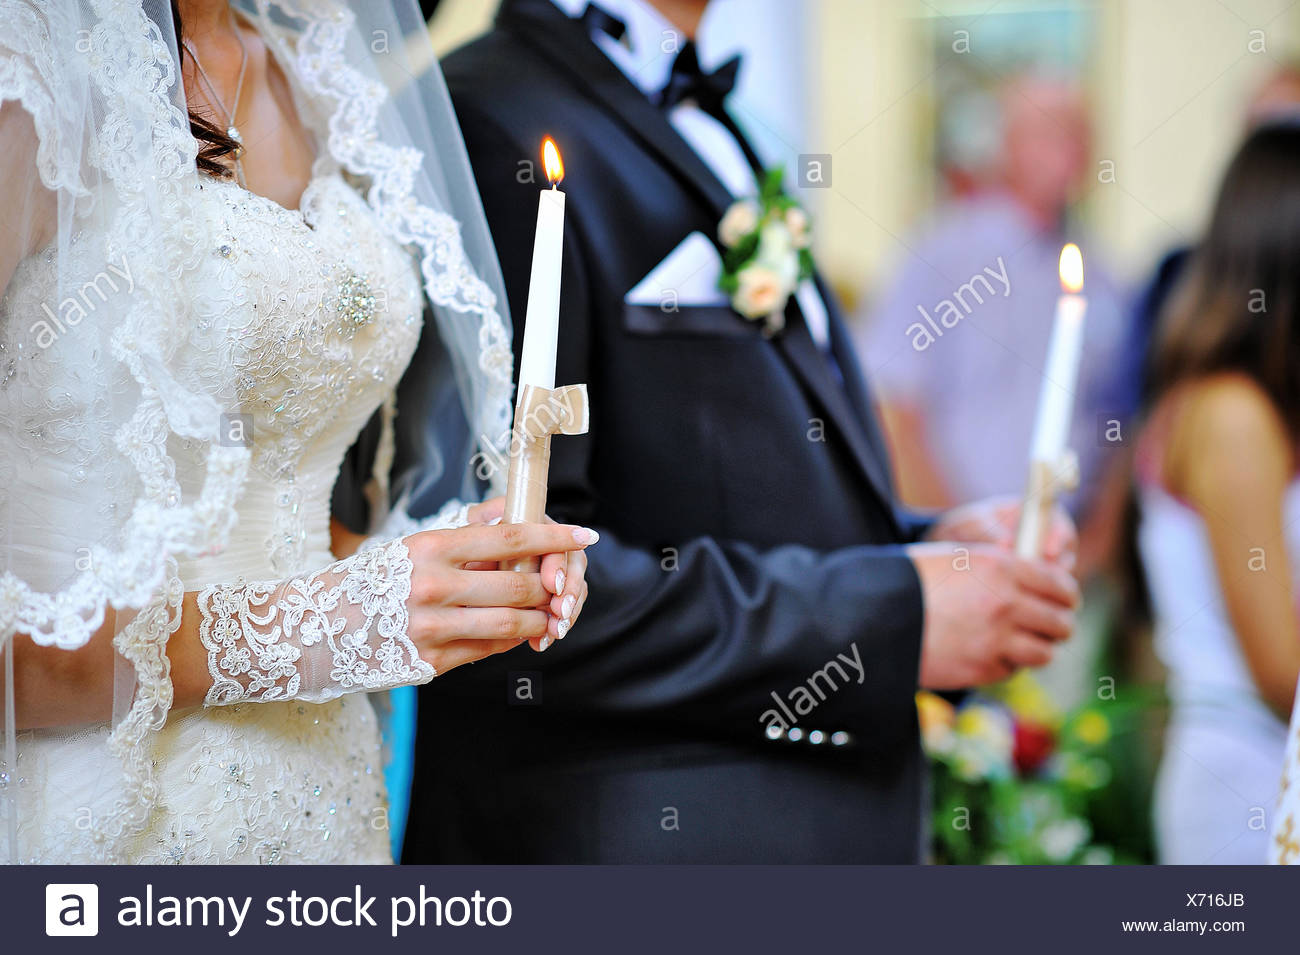 hands of newlyweds - Stock Image